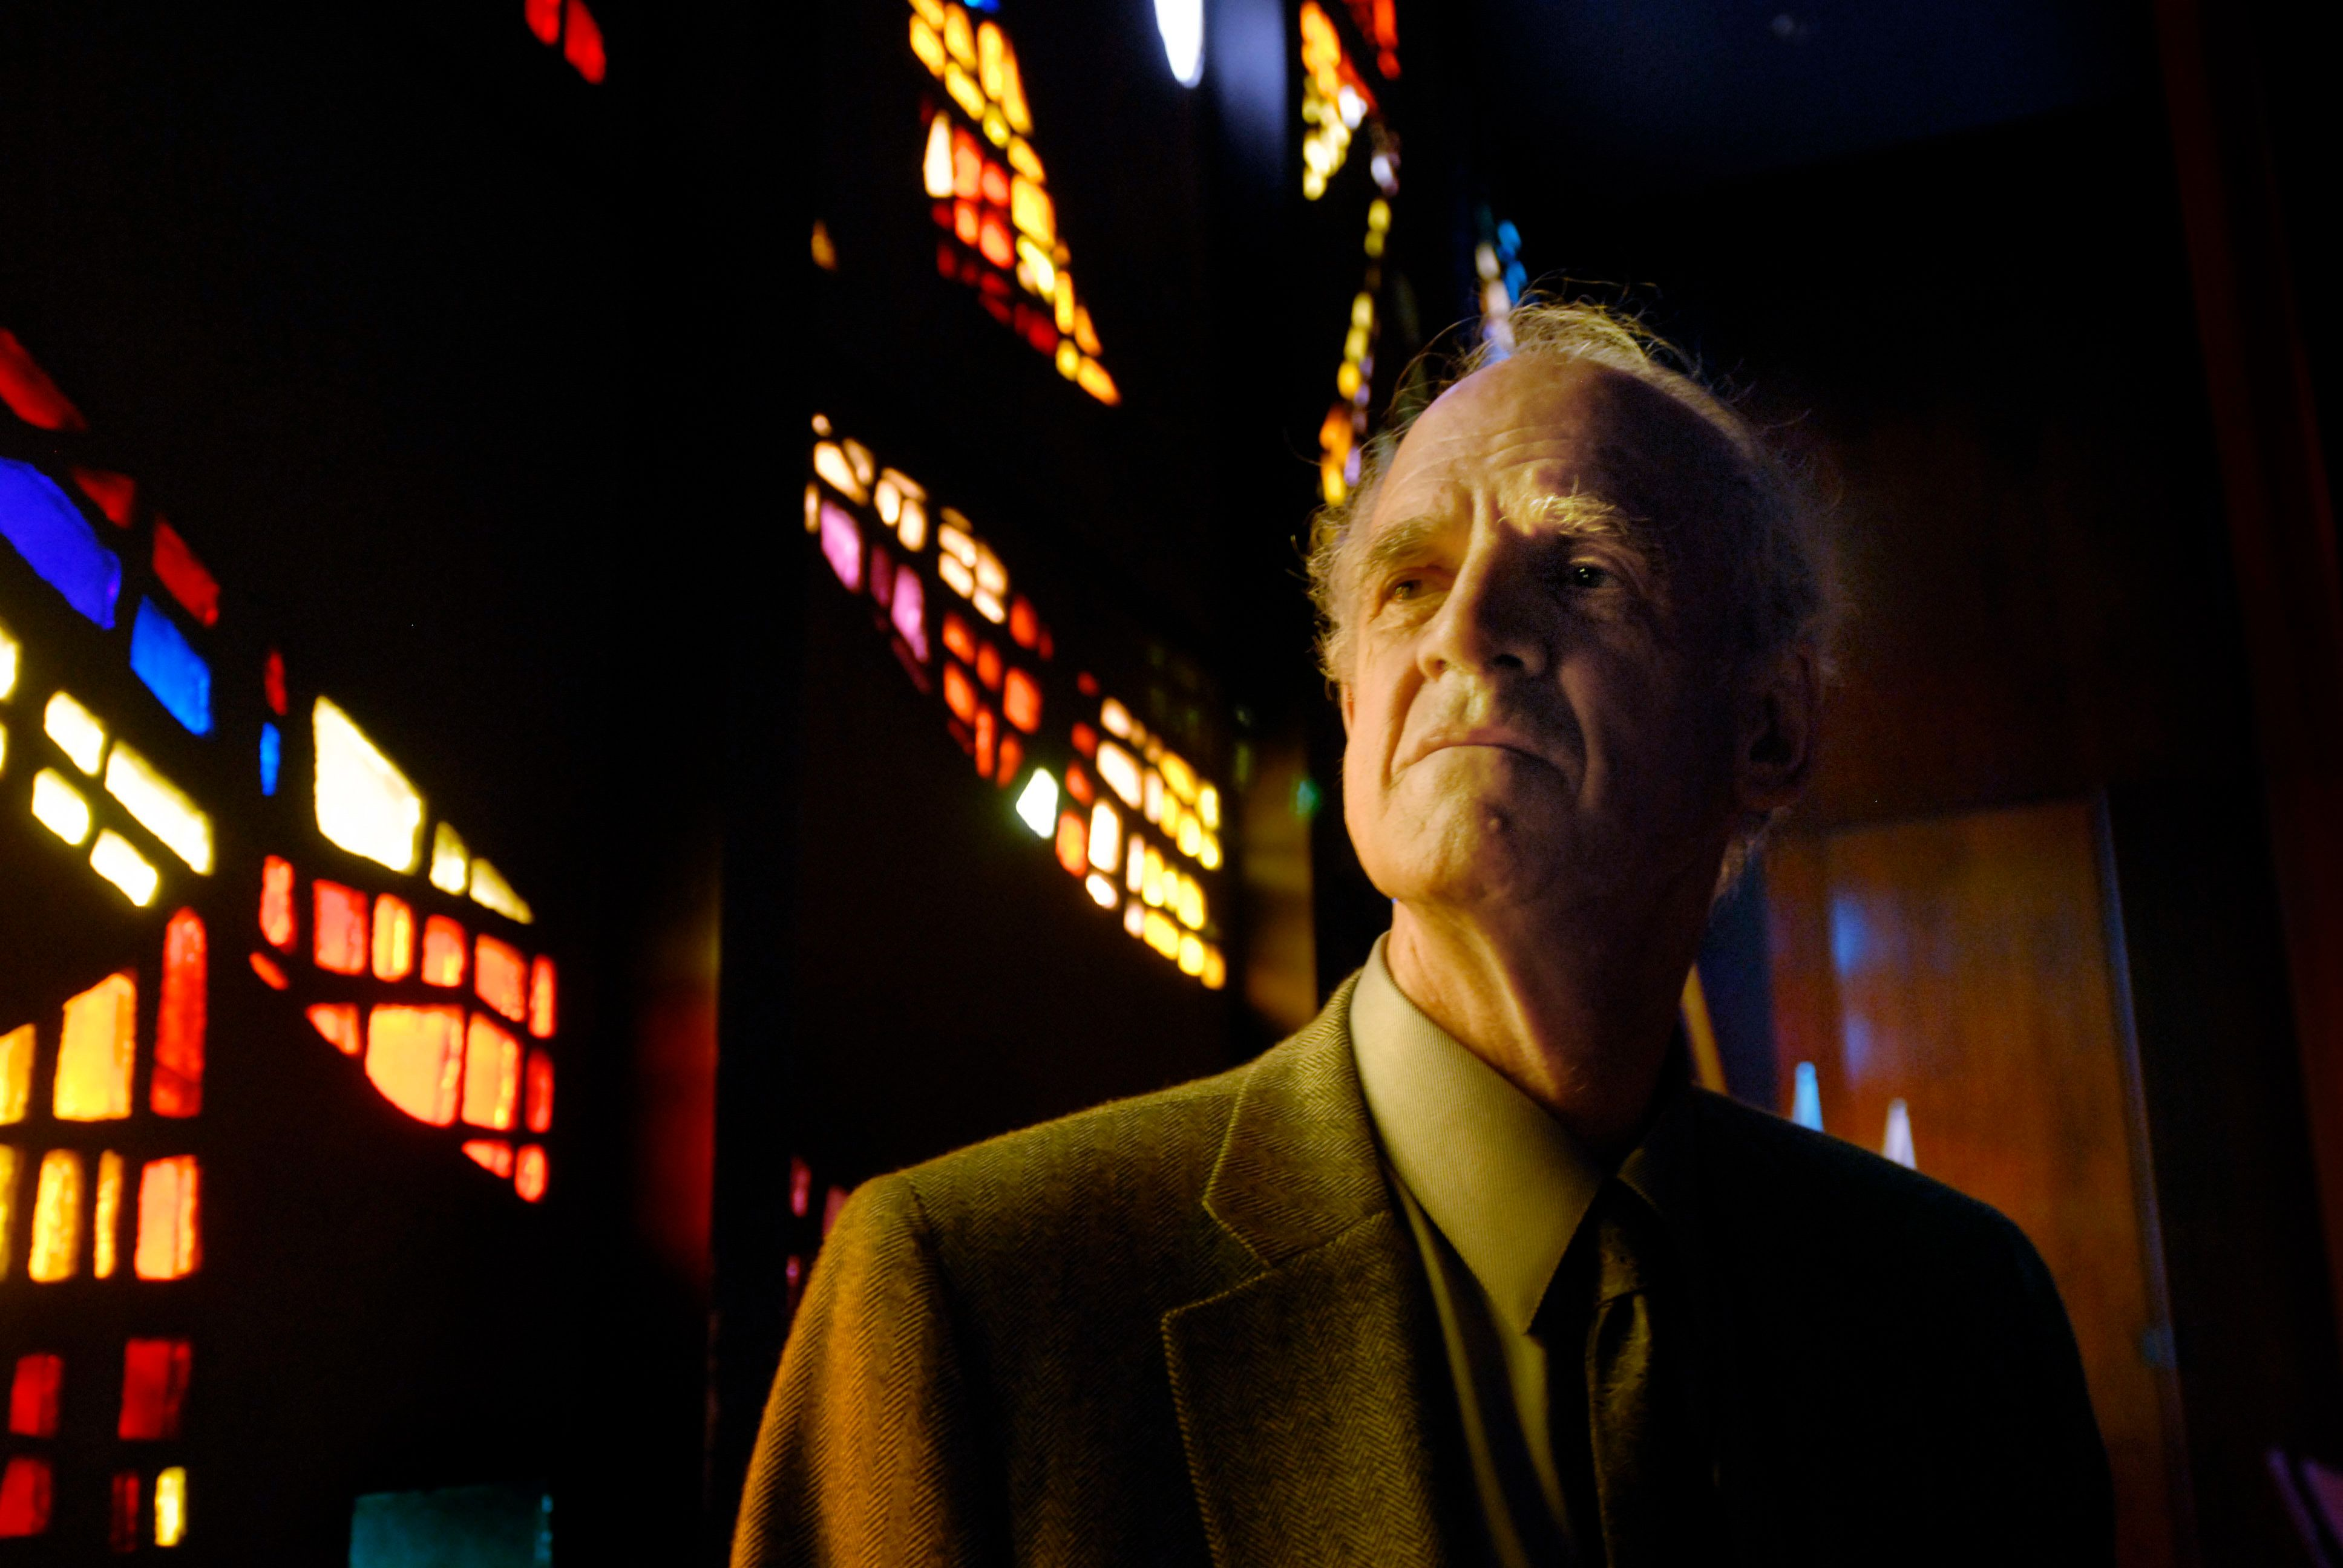 Professor Charles Taylor, 75, from Montreal, photographed in New York City. Taylor is the winner of the $1.5m (USD) Templeton Prize for 'progress toward research or discoveries about spiritual realities.' (Photo by Neville Elder/Corbis via Getty Images)